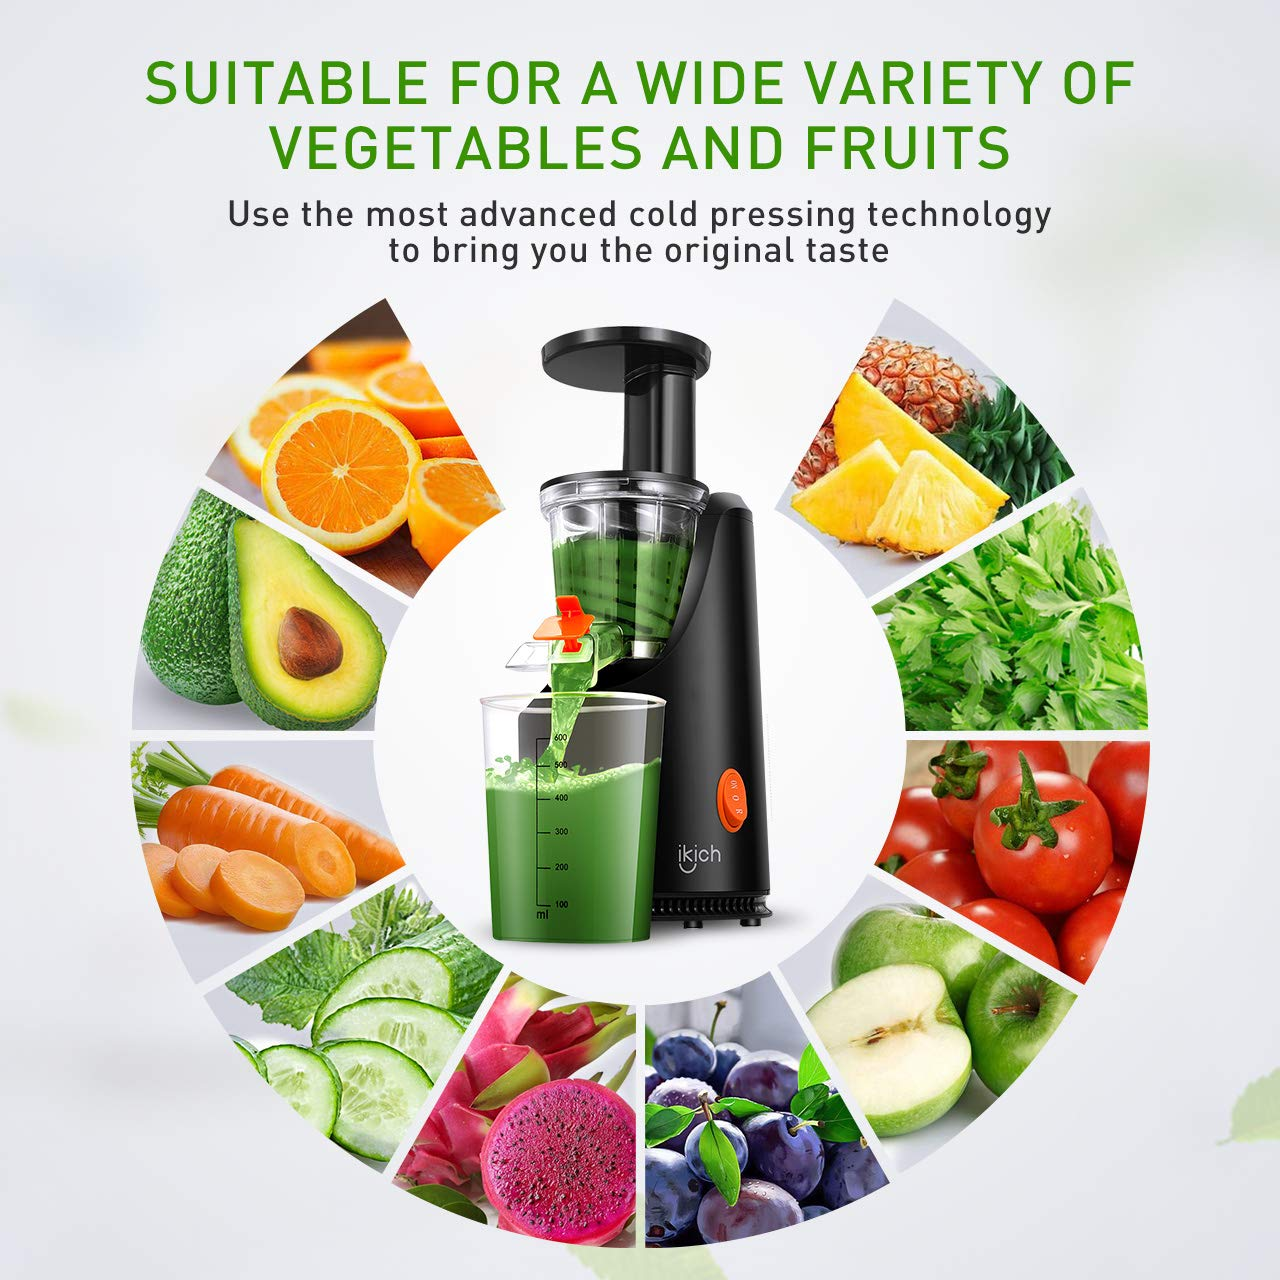 Masticating Juicer IKICH Slow Juicer with 200W Quiet Efficient Motor Compact Design Juicer Machines Easy to Clean with Juice Recipes , Brush , Cold Press Juicer with BPA-Free, FDA Approved by IKICH (Image #4)